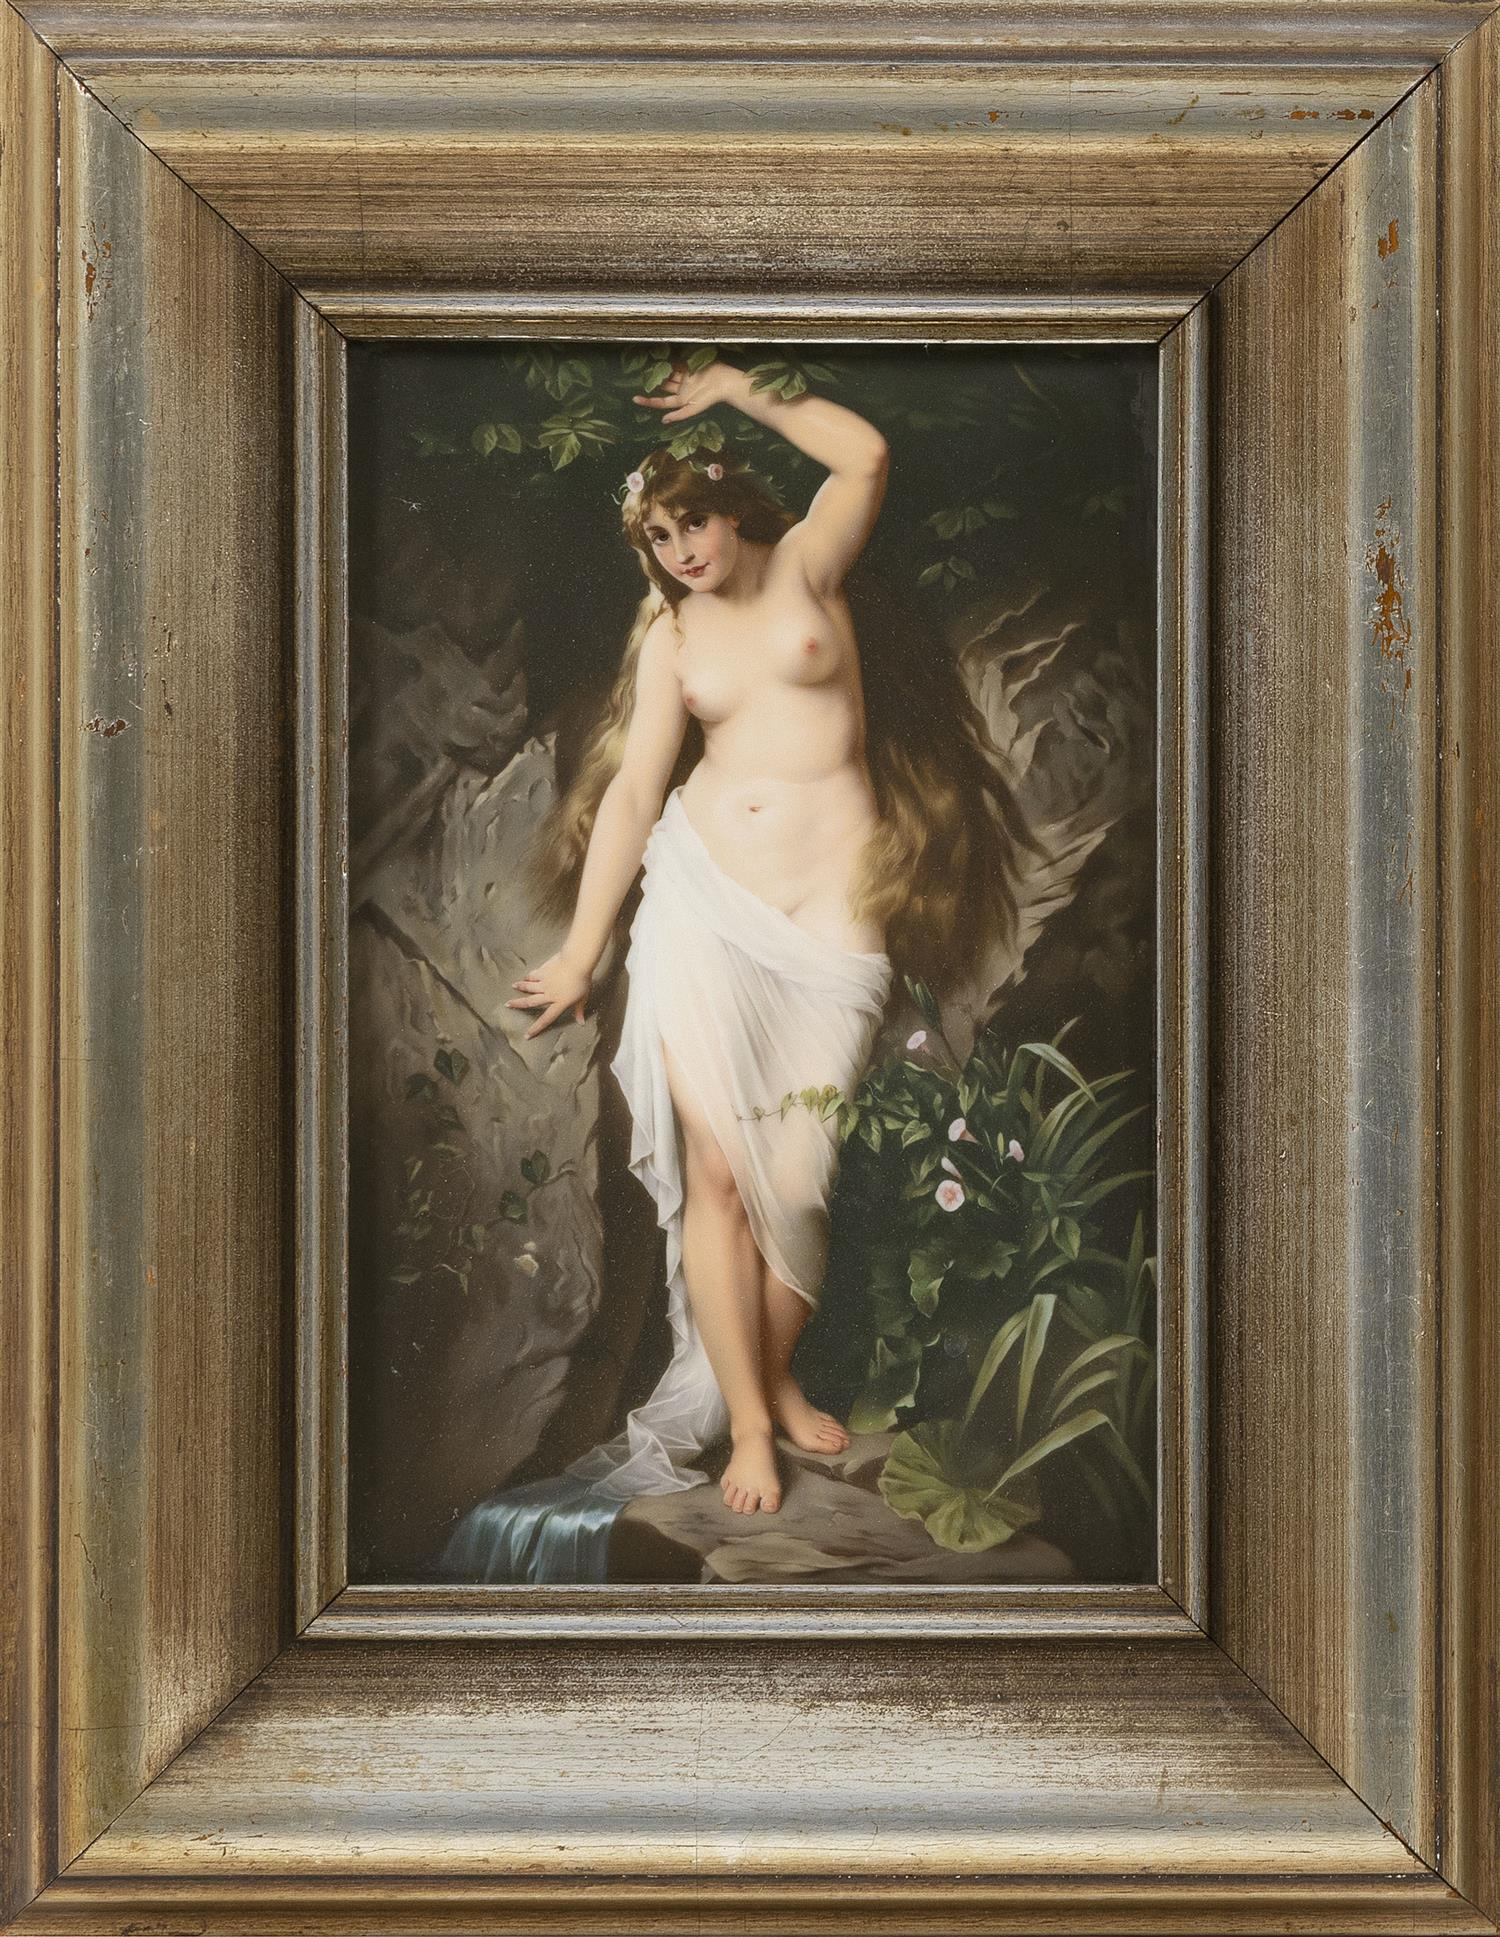 "KPM PORCELAIN PLAQUE Titled ""Die Quelle, after R, Beuschlag"". Depicts a young woman in a diaphanous drape standing in a forest grott..."